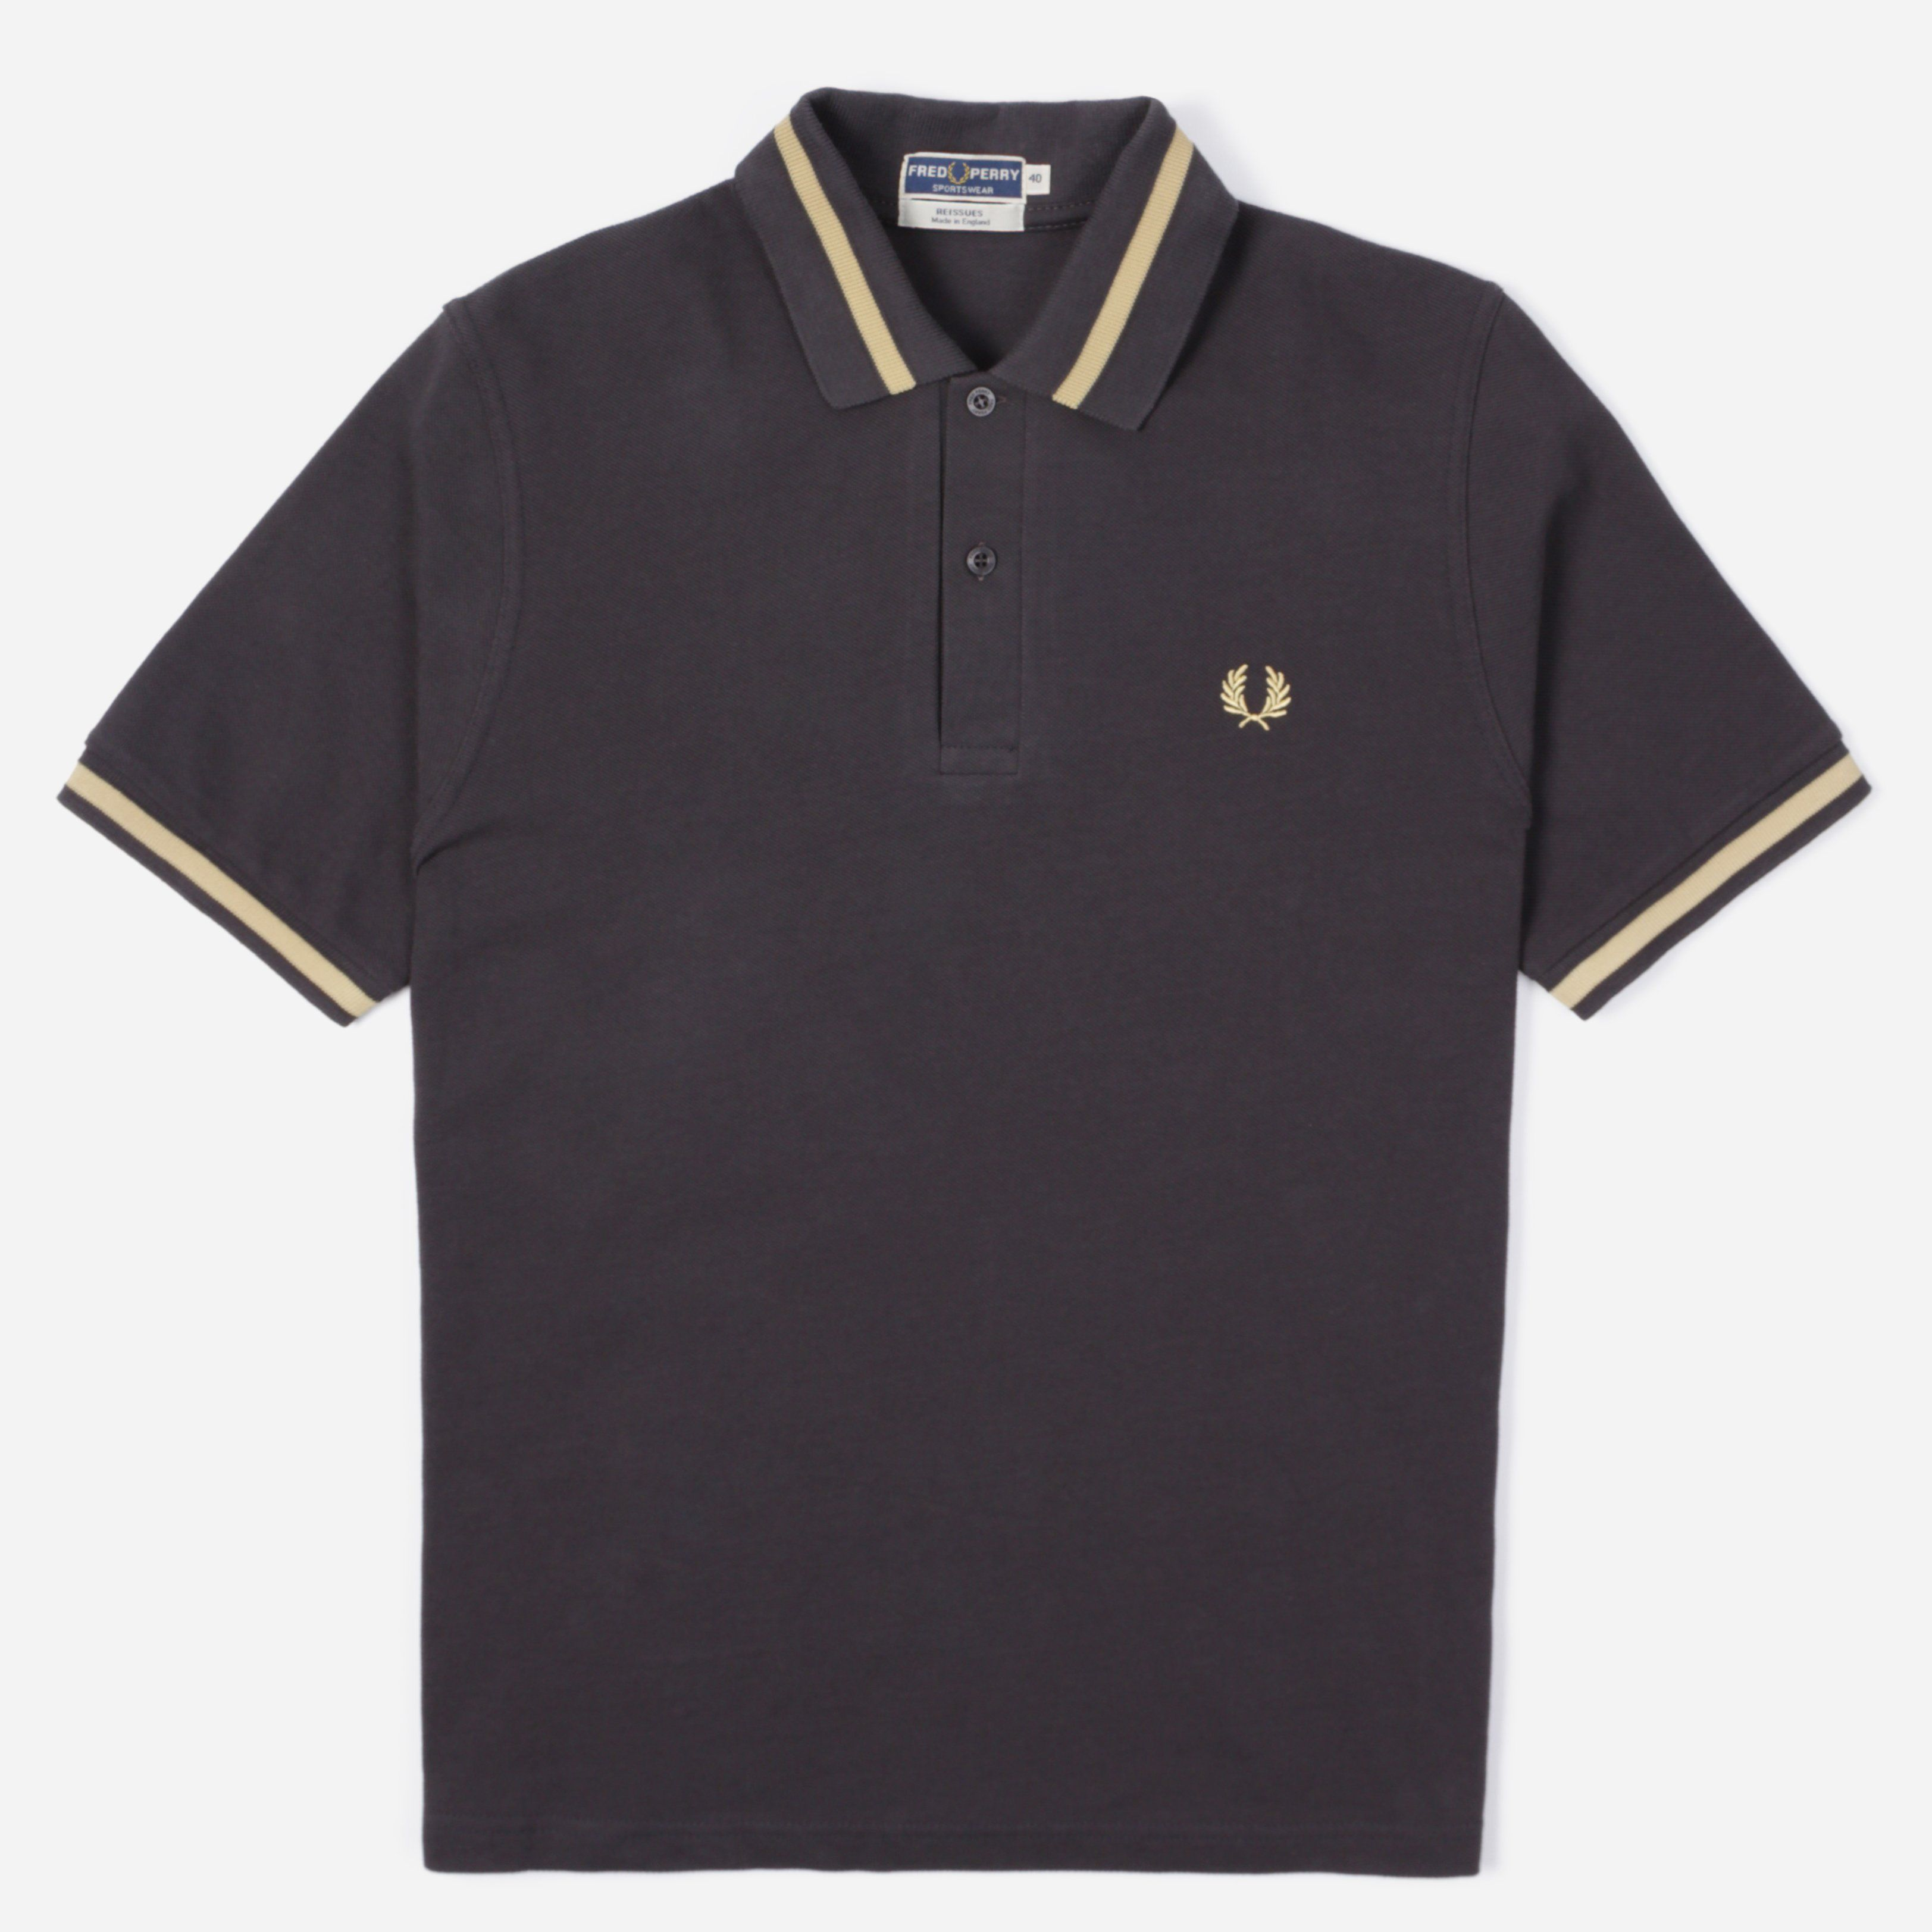 Inventive Fred Perry Polo Shirt Shirts & Tops